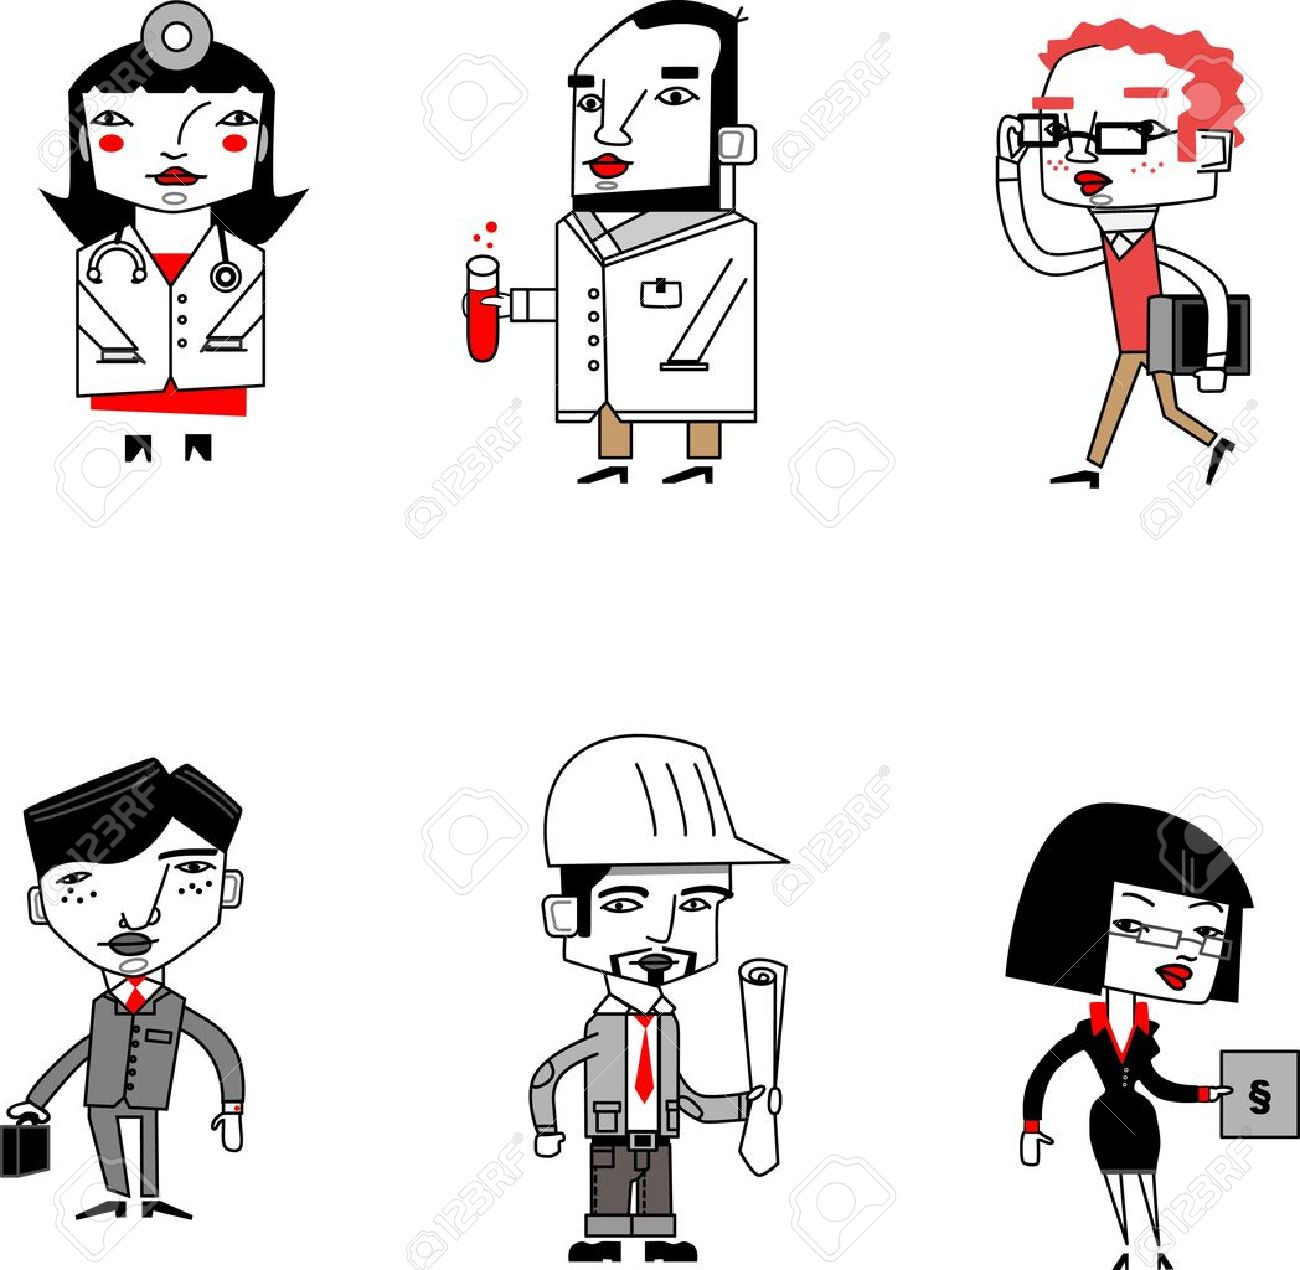 Jobs with cartoon style figures Stock Vector - 10424860